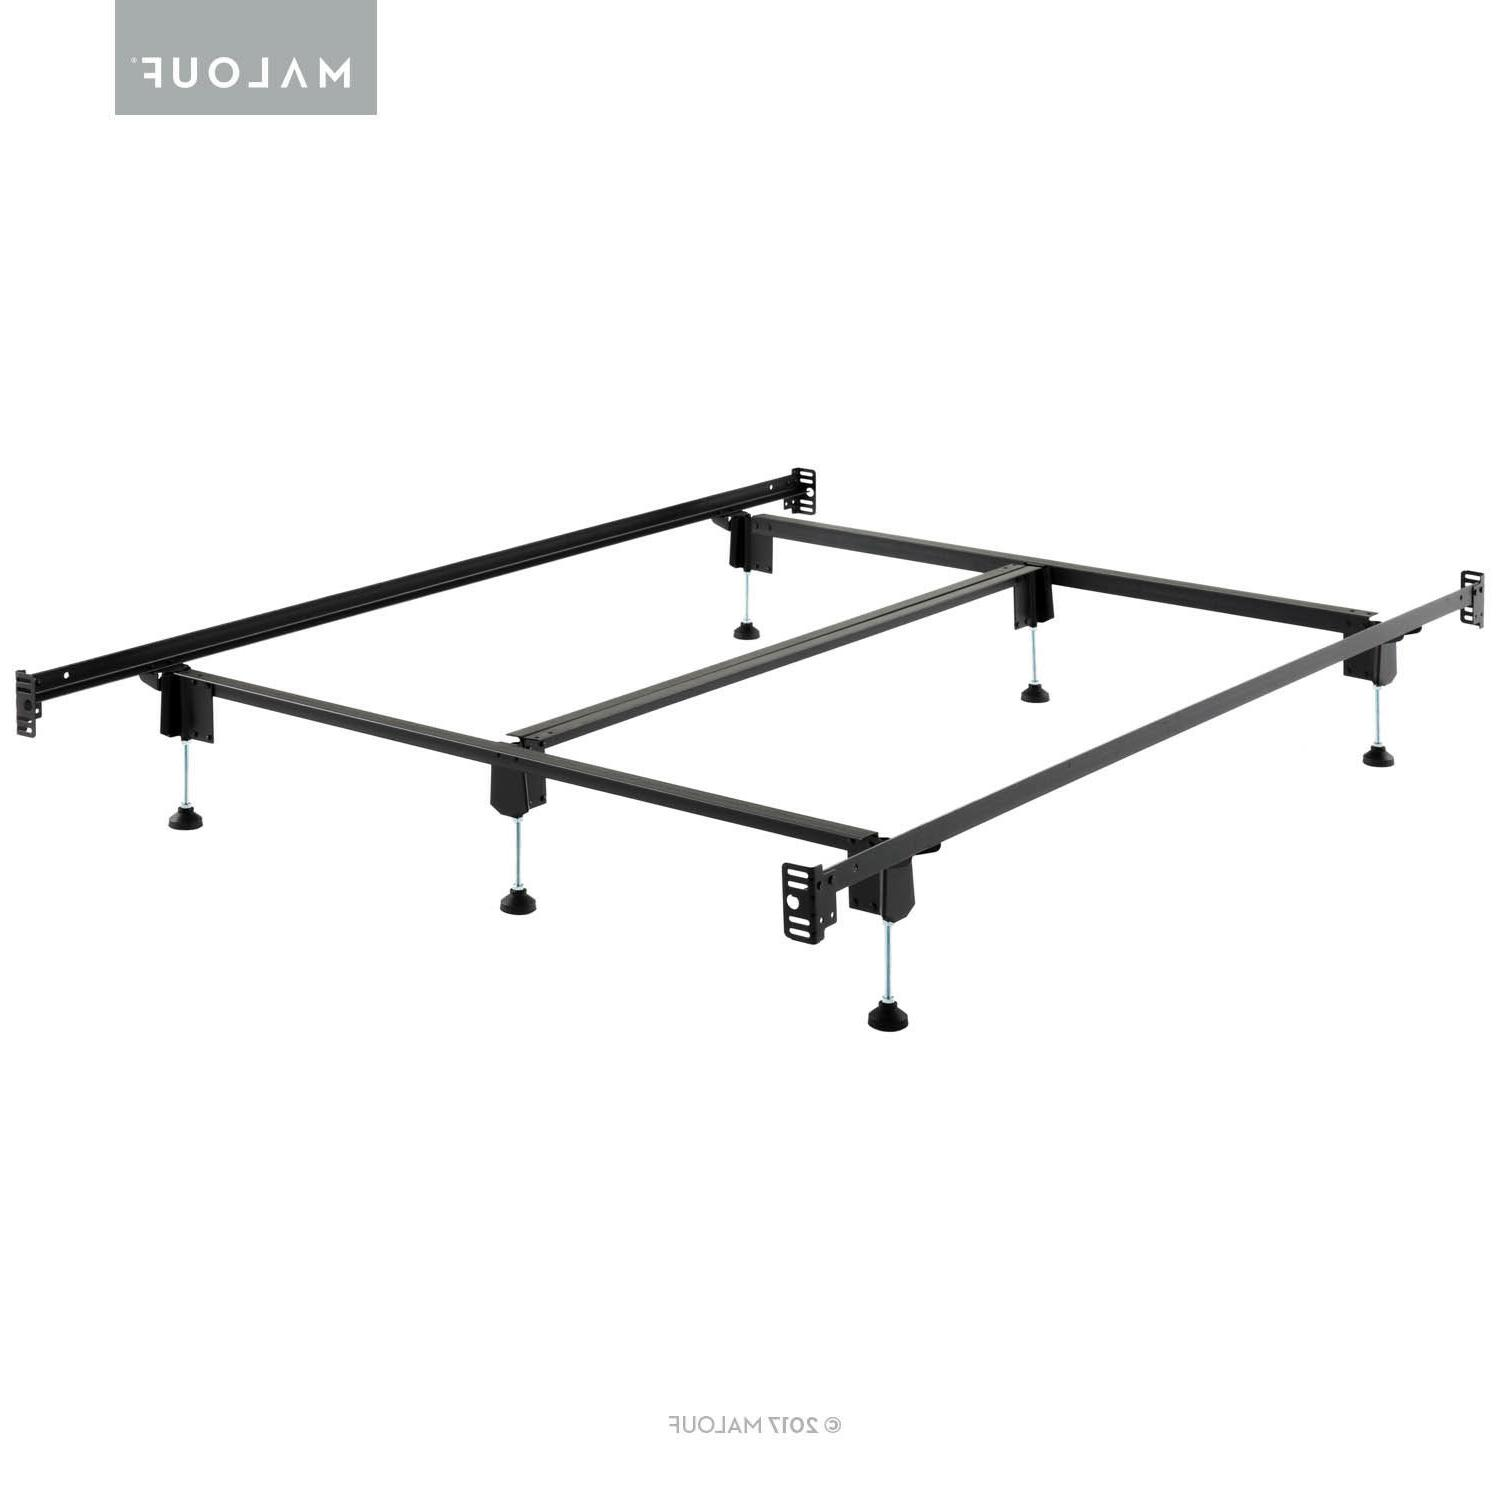 Structures Heavy Bolt-On Headboard Bed Frame